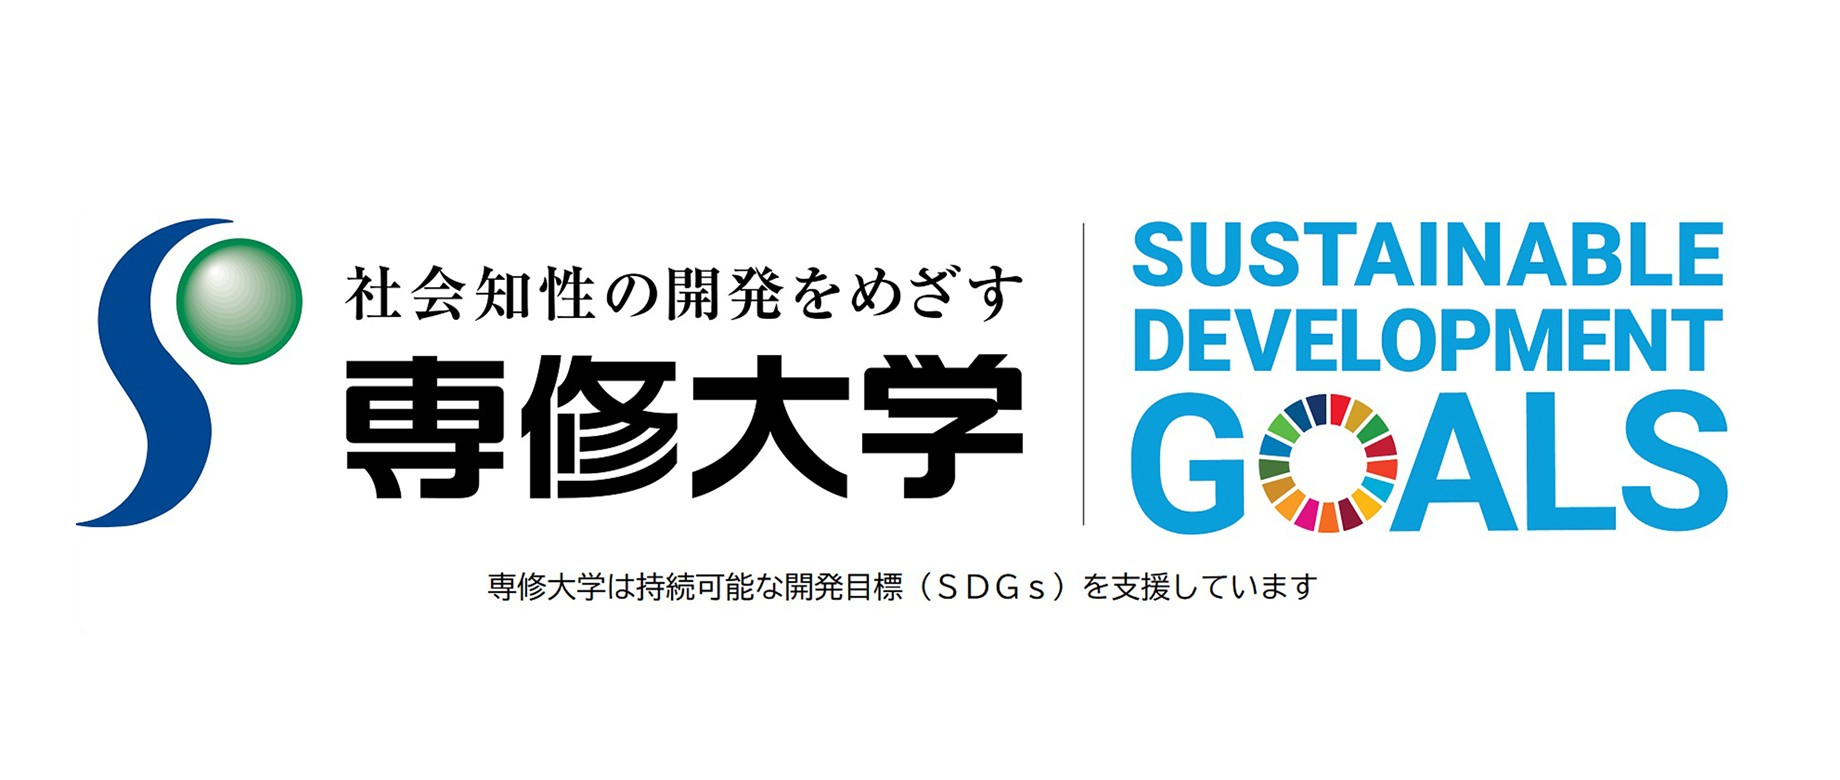 【専修大】SDGs NEWSLETTER No.1